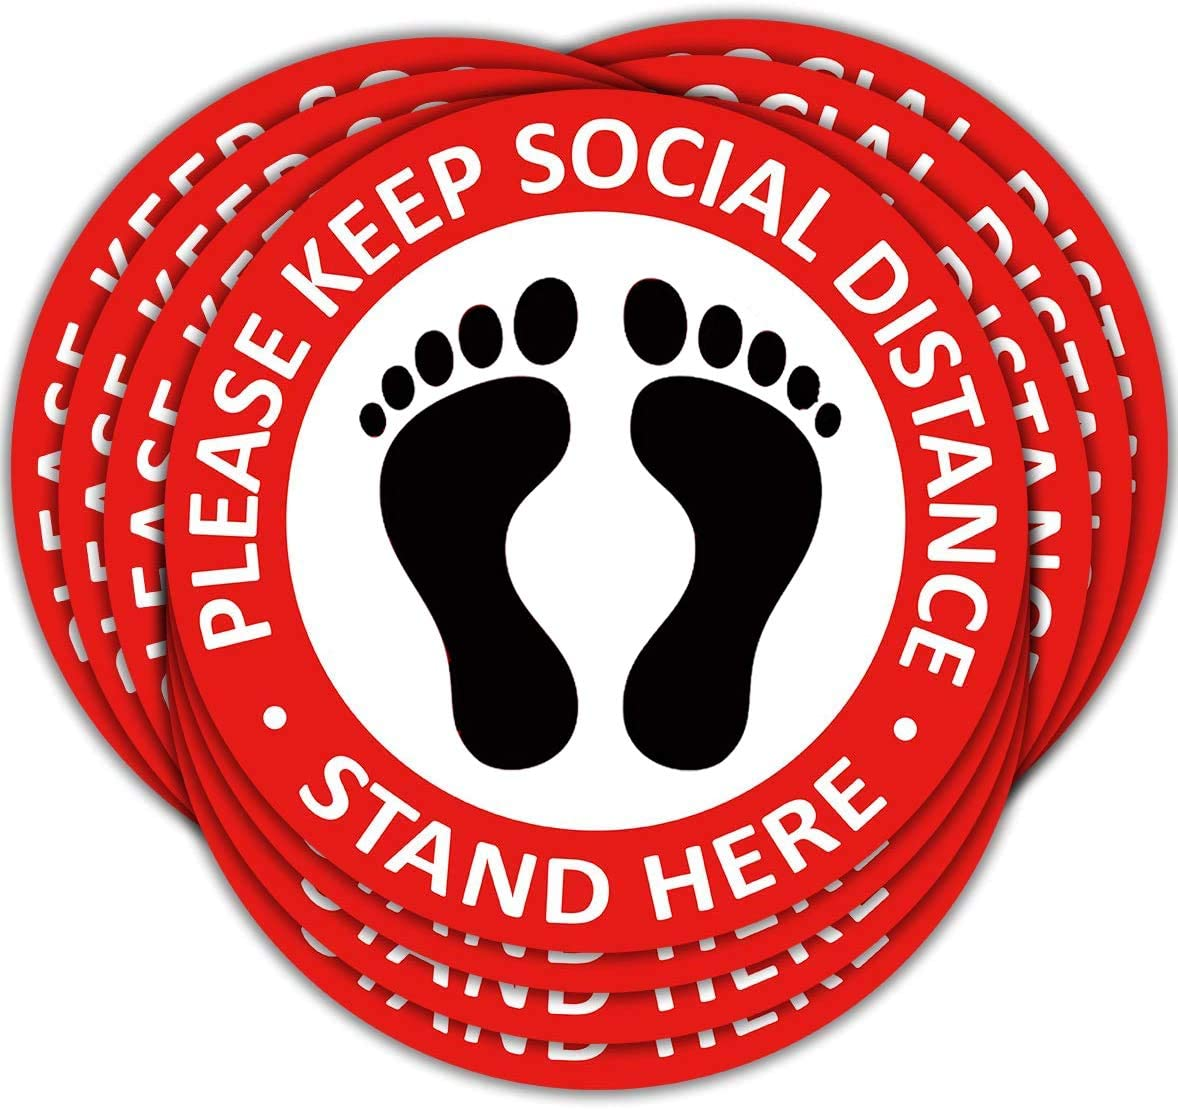 """10 Pack of 7"""" Social Distancing Floor Decals,Safety Sign for Crowd Control Guidance Indication Floor Stickers Signs, Made to Walk on Signage,Anti Slip Remove Easily…"""